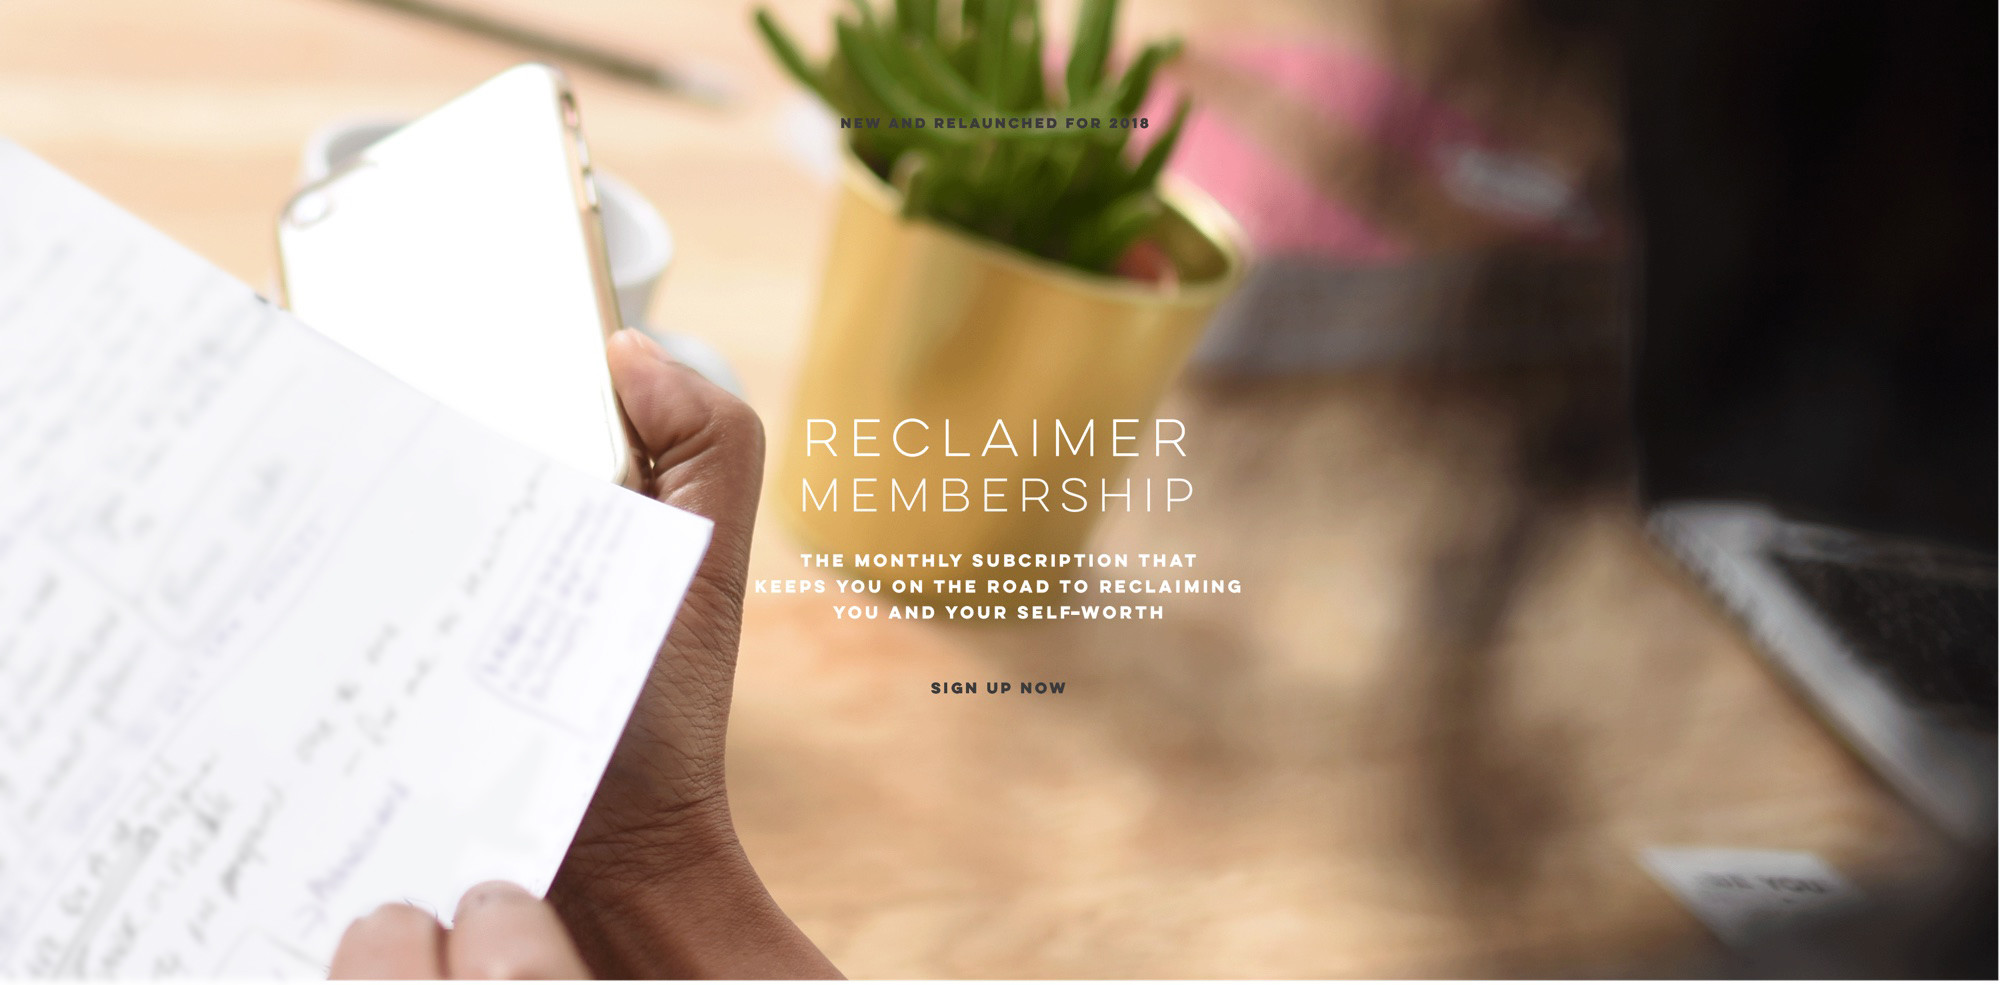 Reclaimer Membership - find out more